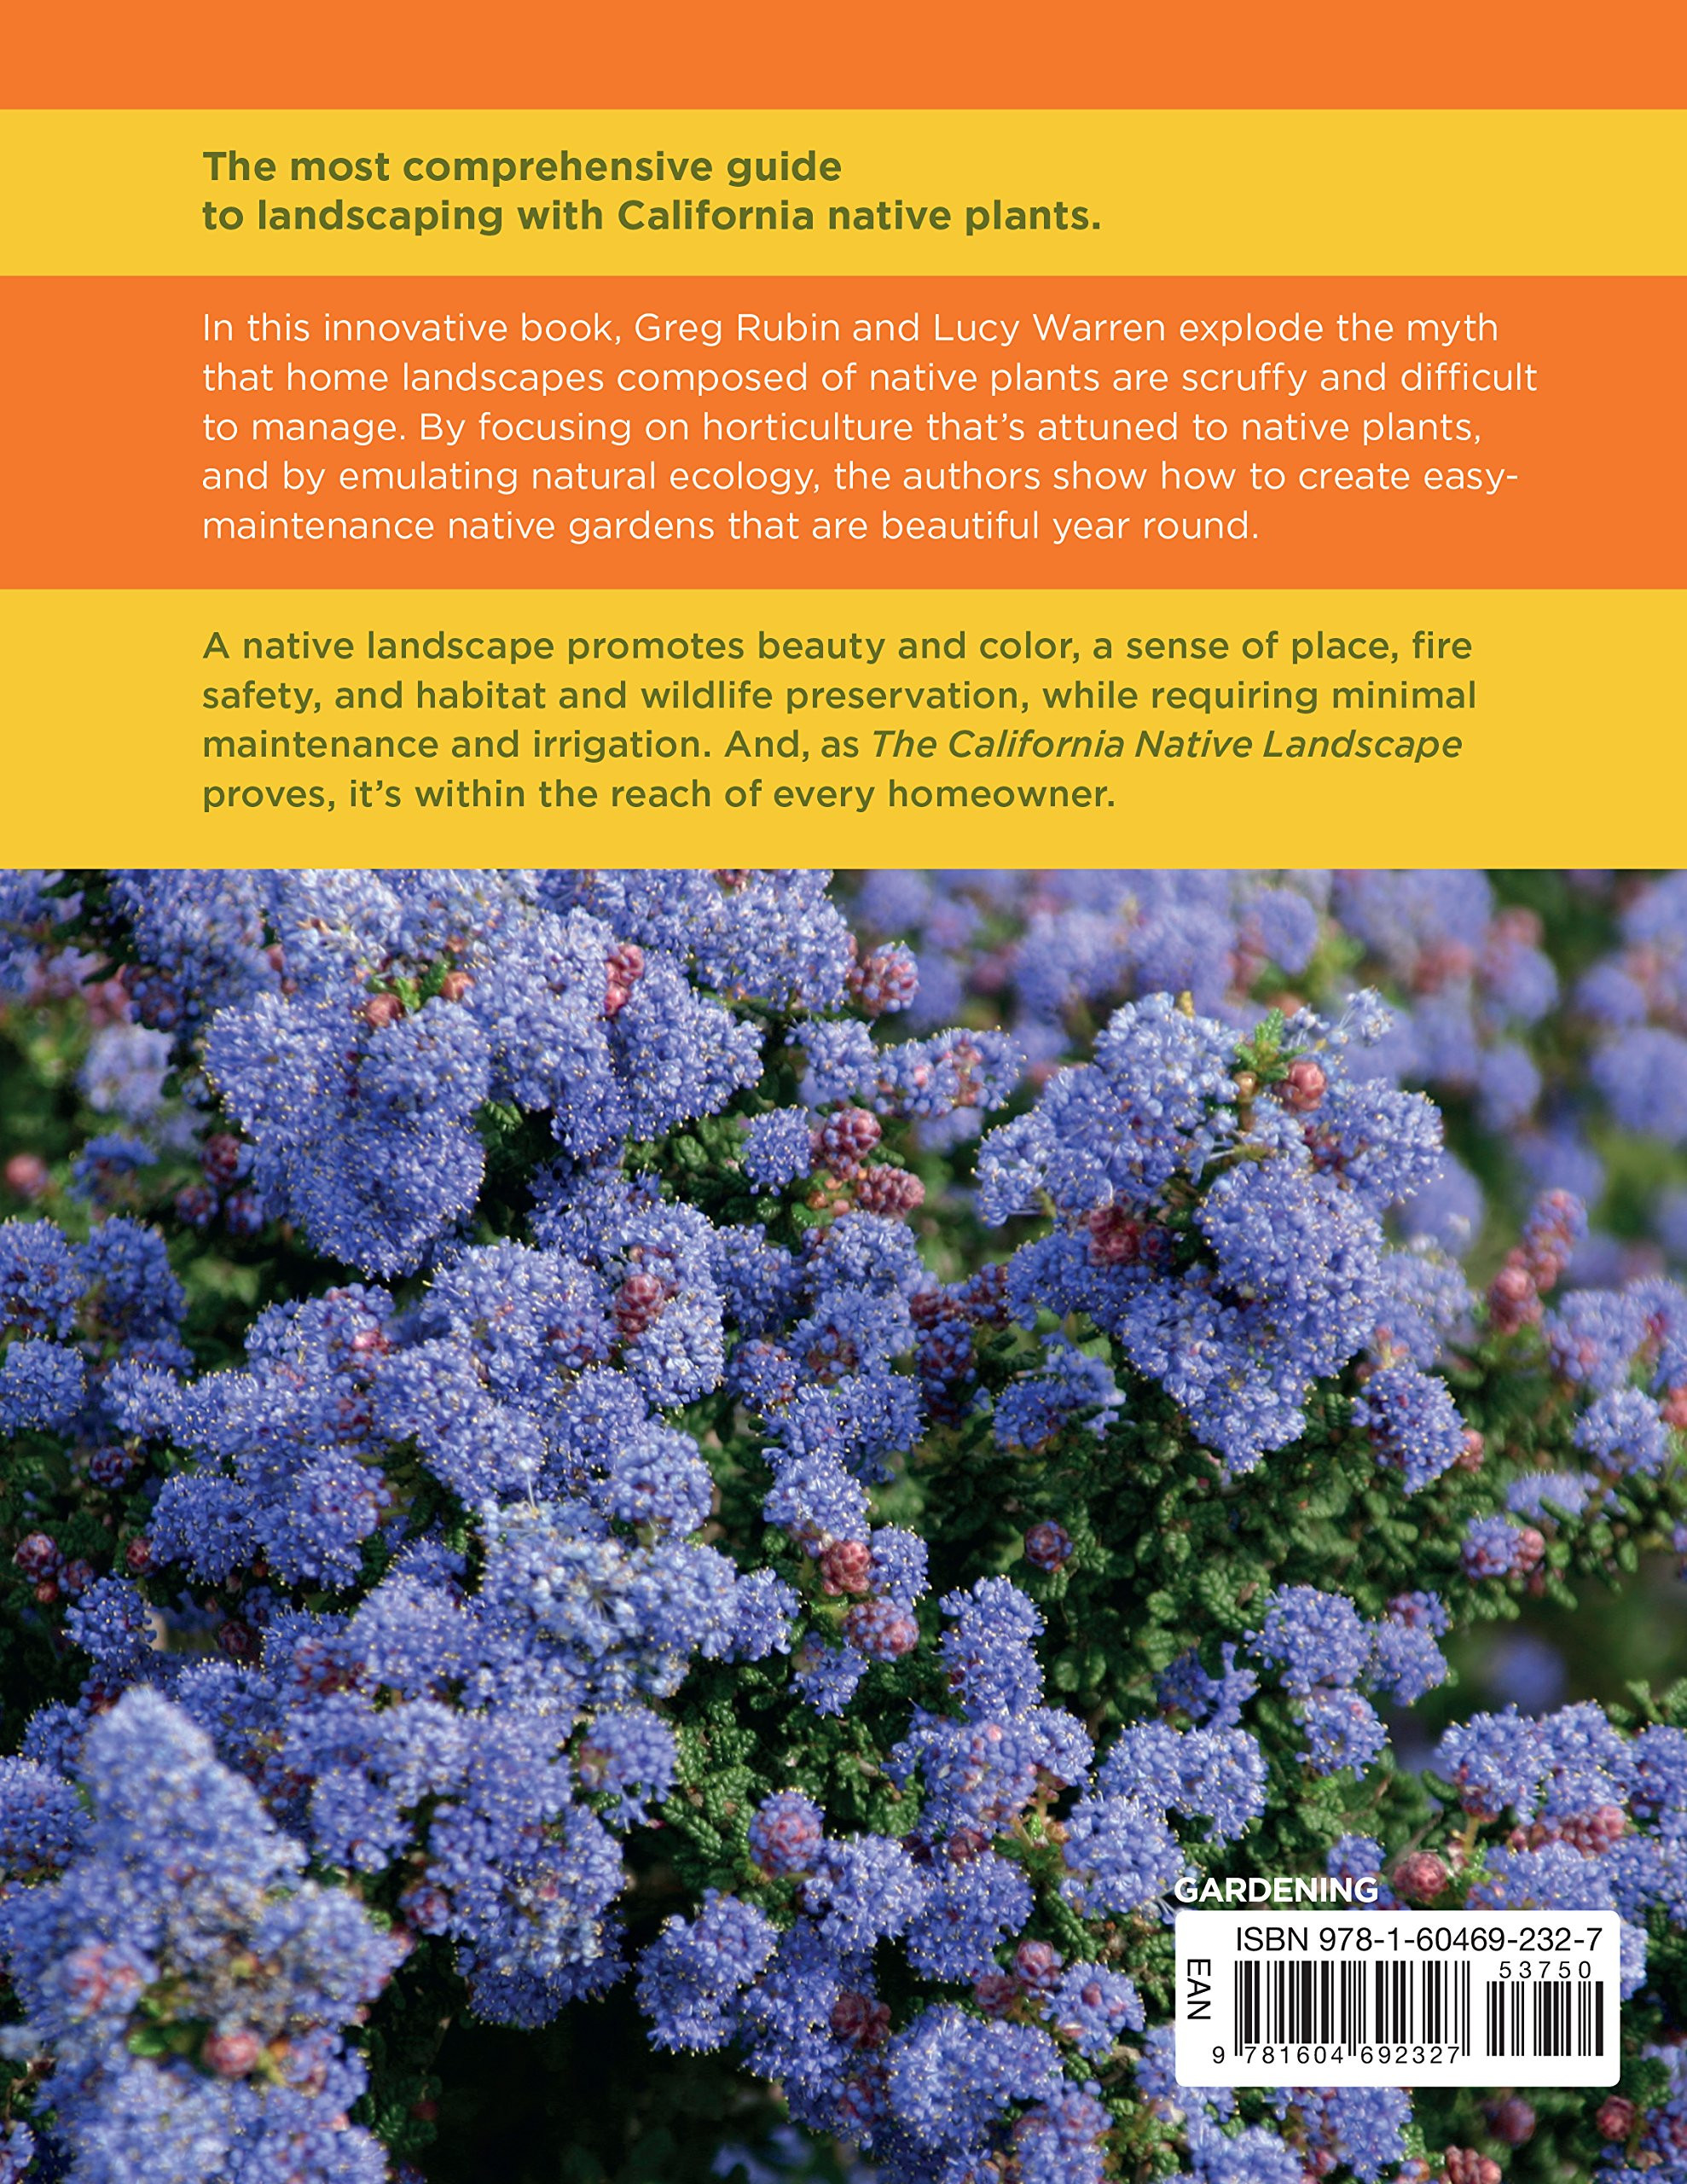 The Drought Defying California Garden 230 Native Plants for a Lush Low Water Landscape Greg Rubin Lucy Warren Amazon Books